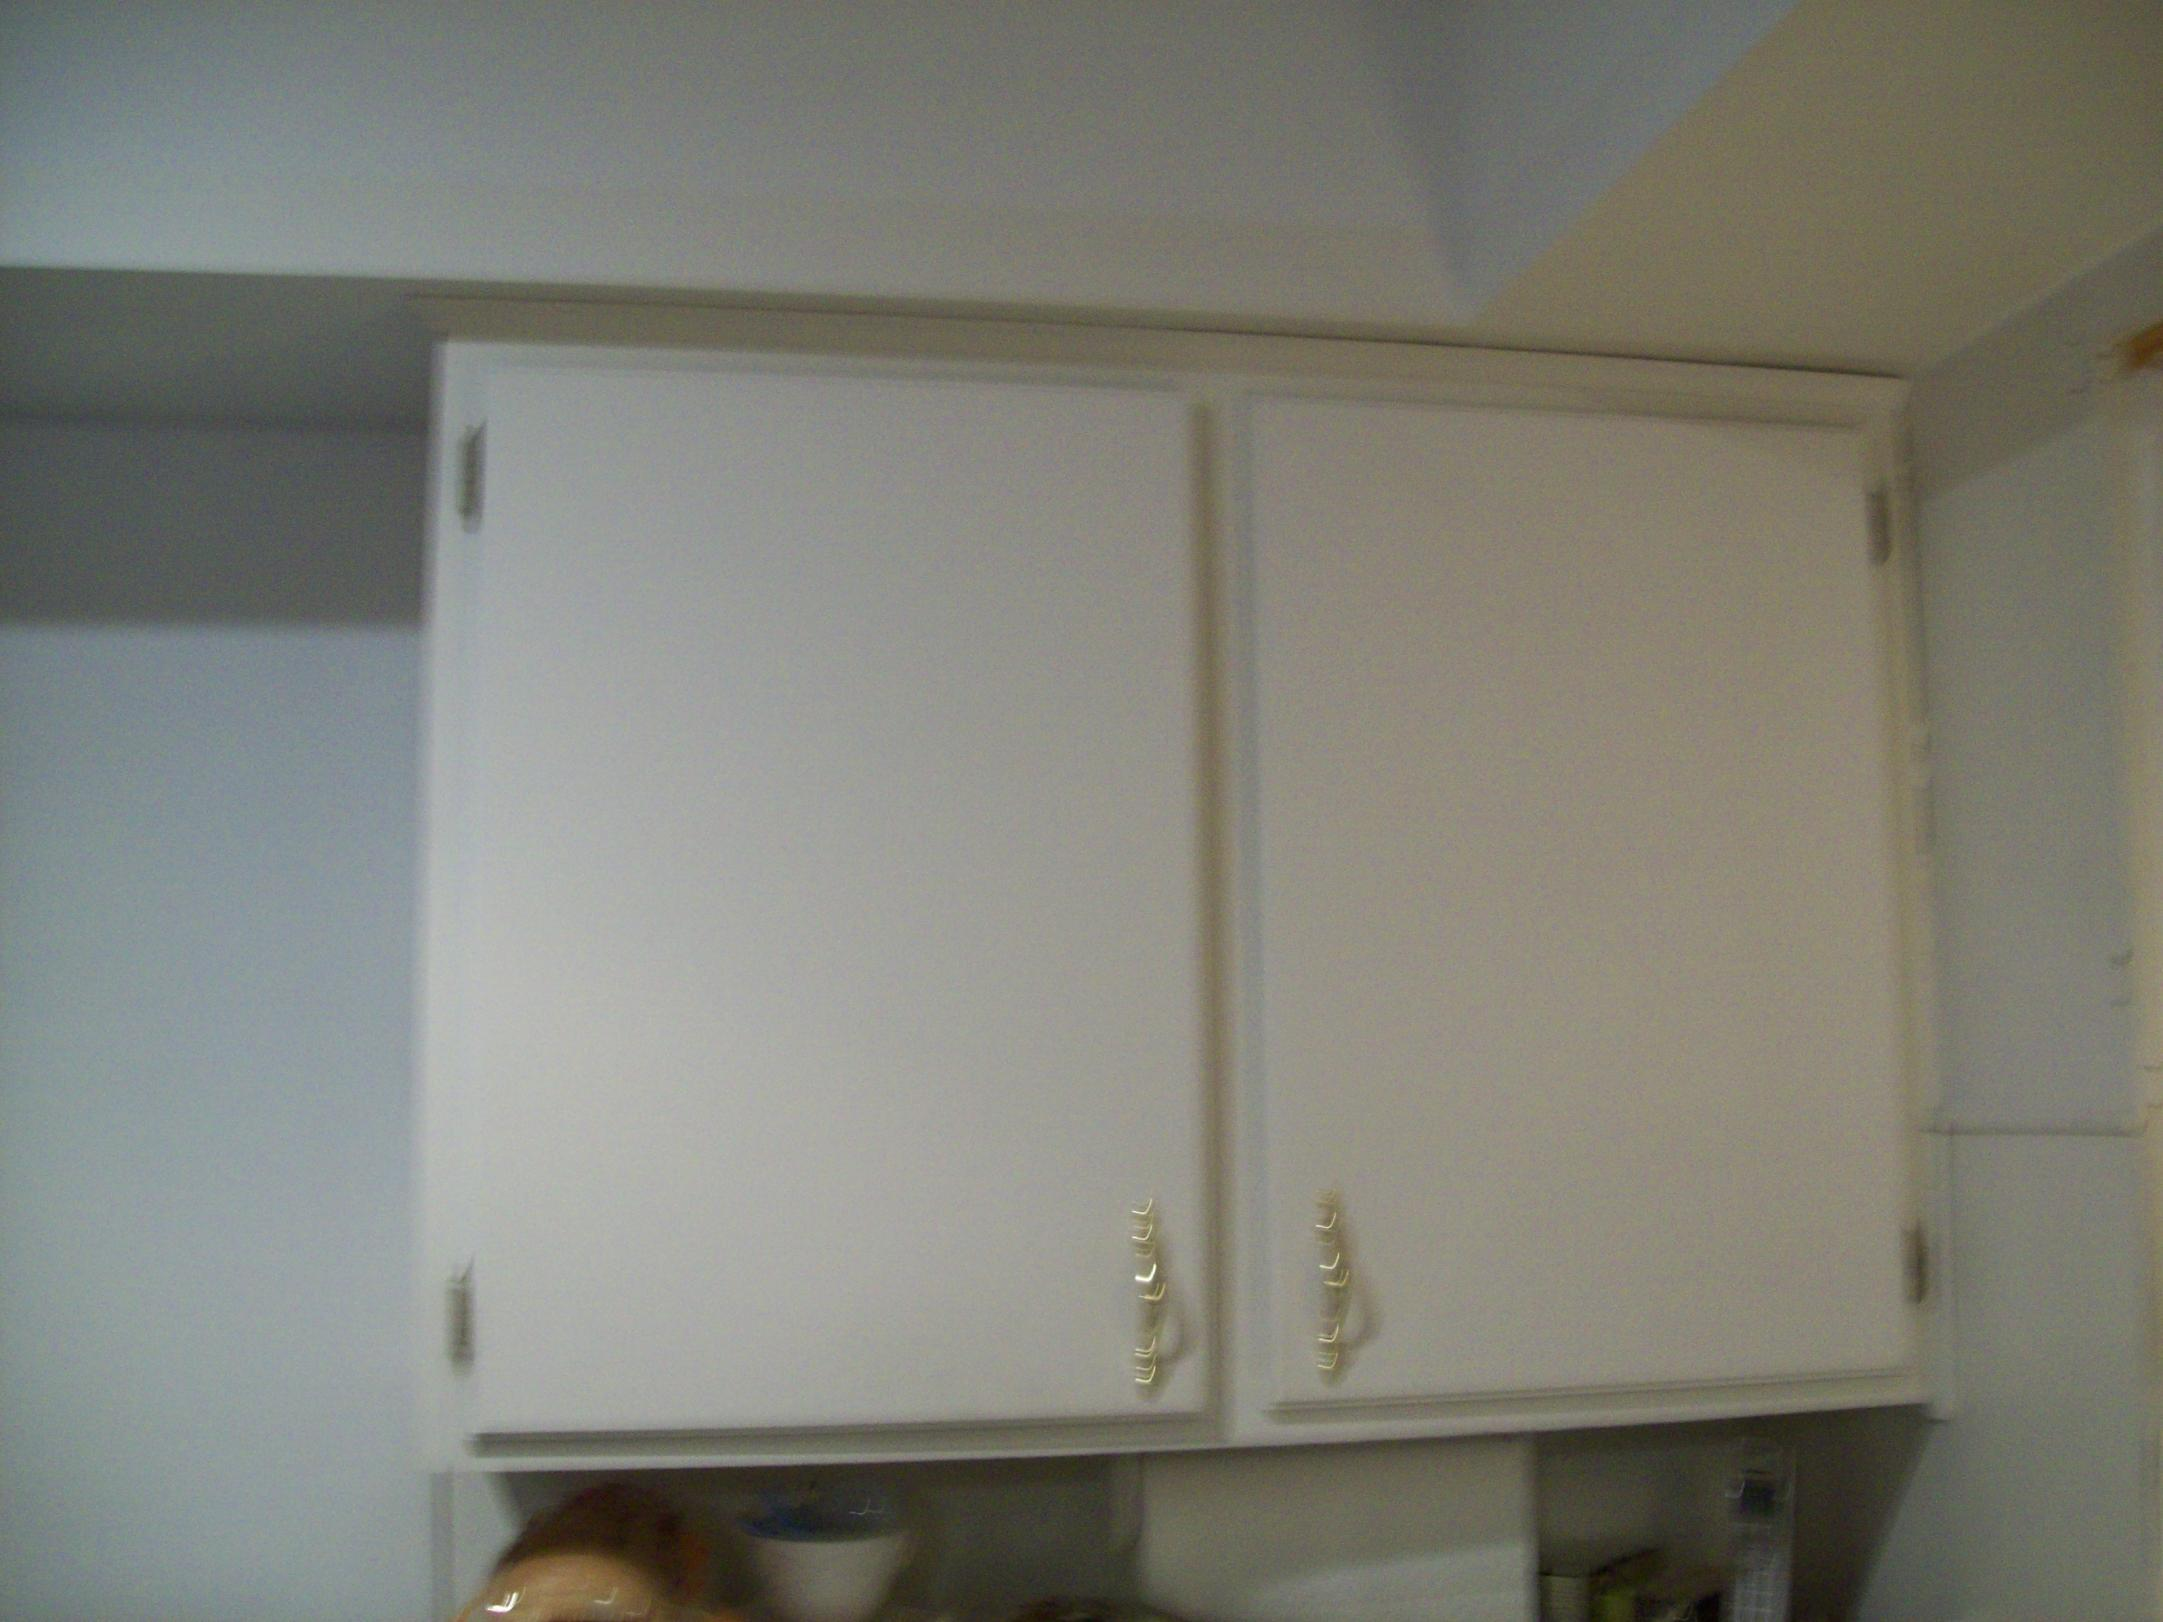 Help No Bore Concealed Hinge On Face Frame Overlay Cabinet With 1 2 Thick Doors Contractor Talk Professional Construction And Remodeling Forum